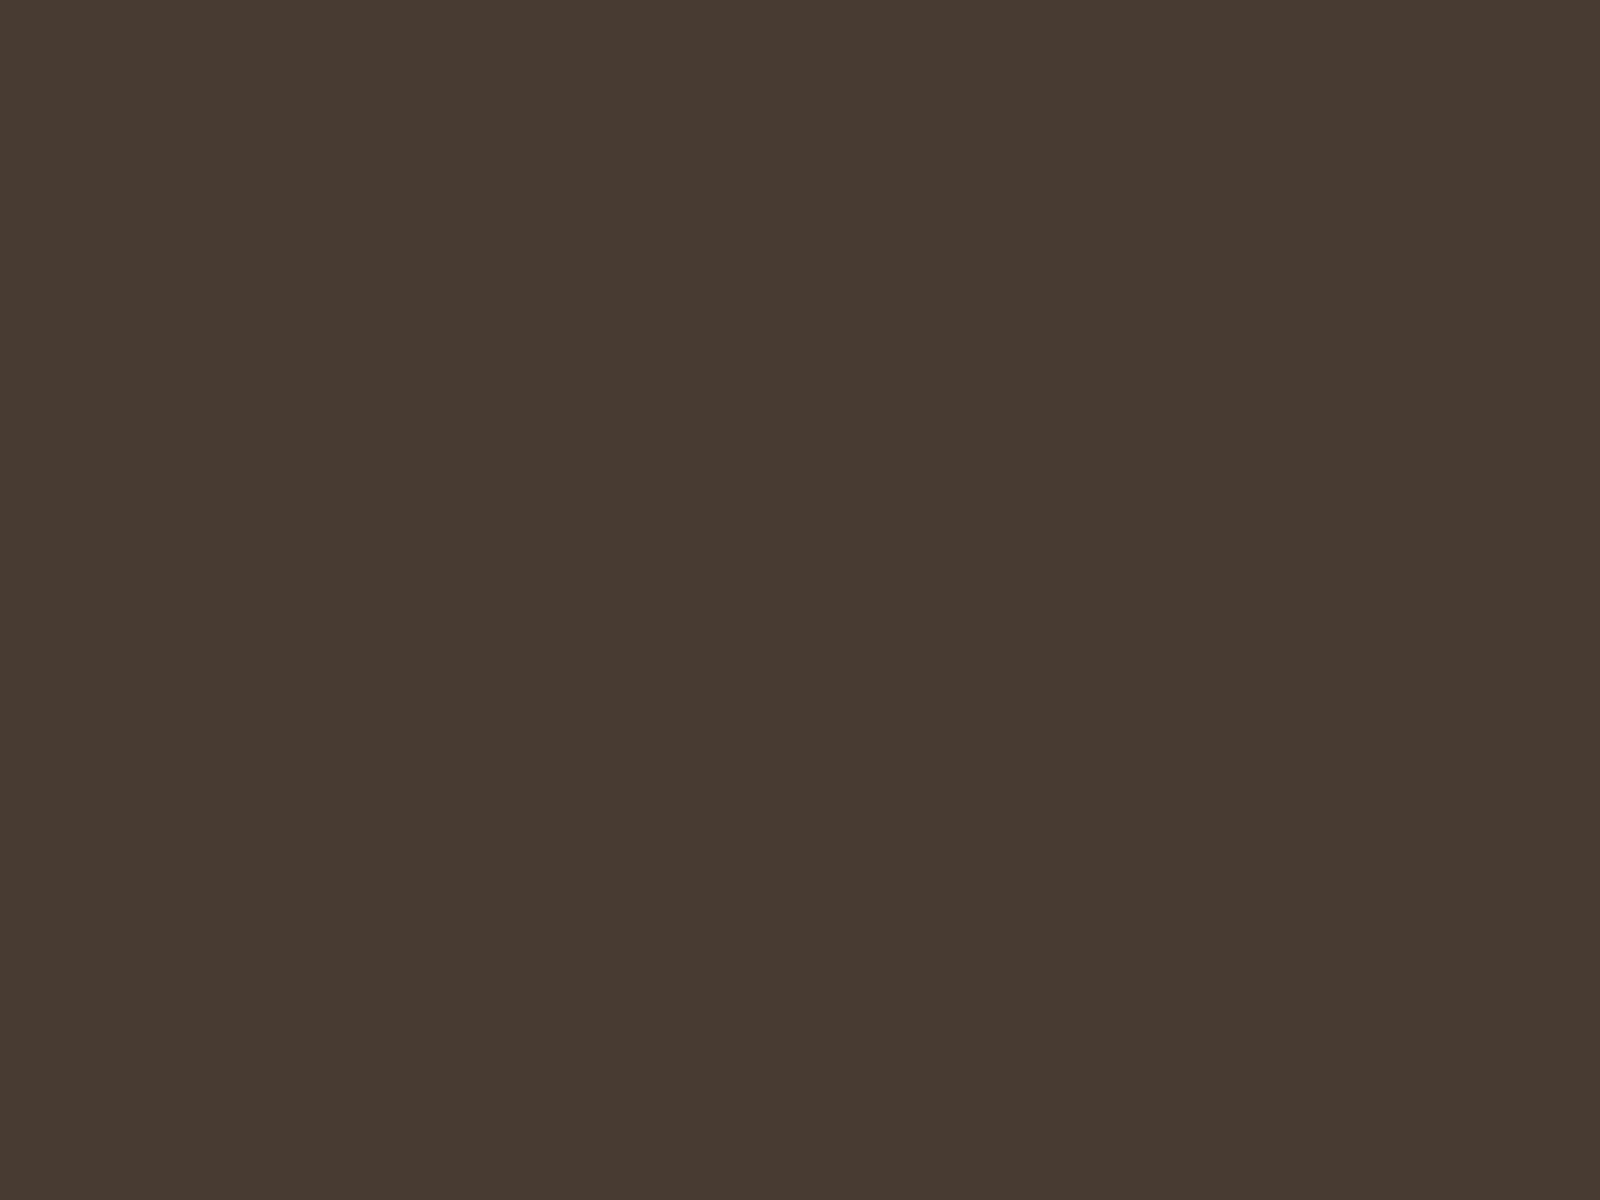 1600x1200 Taupe Solid Color Background